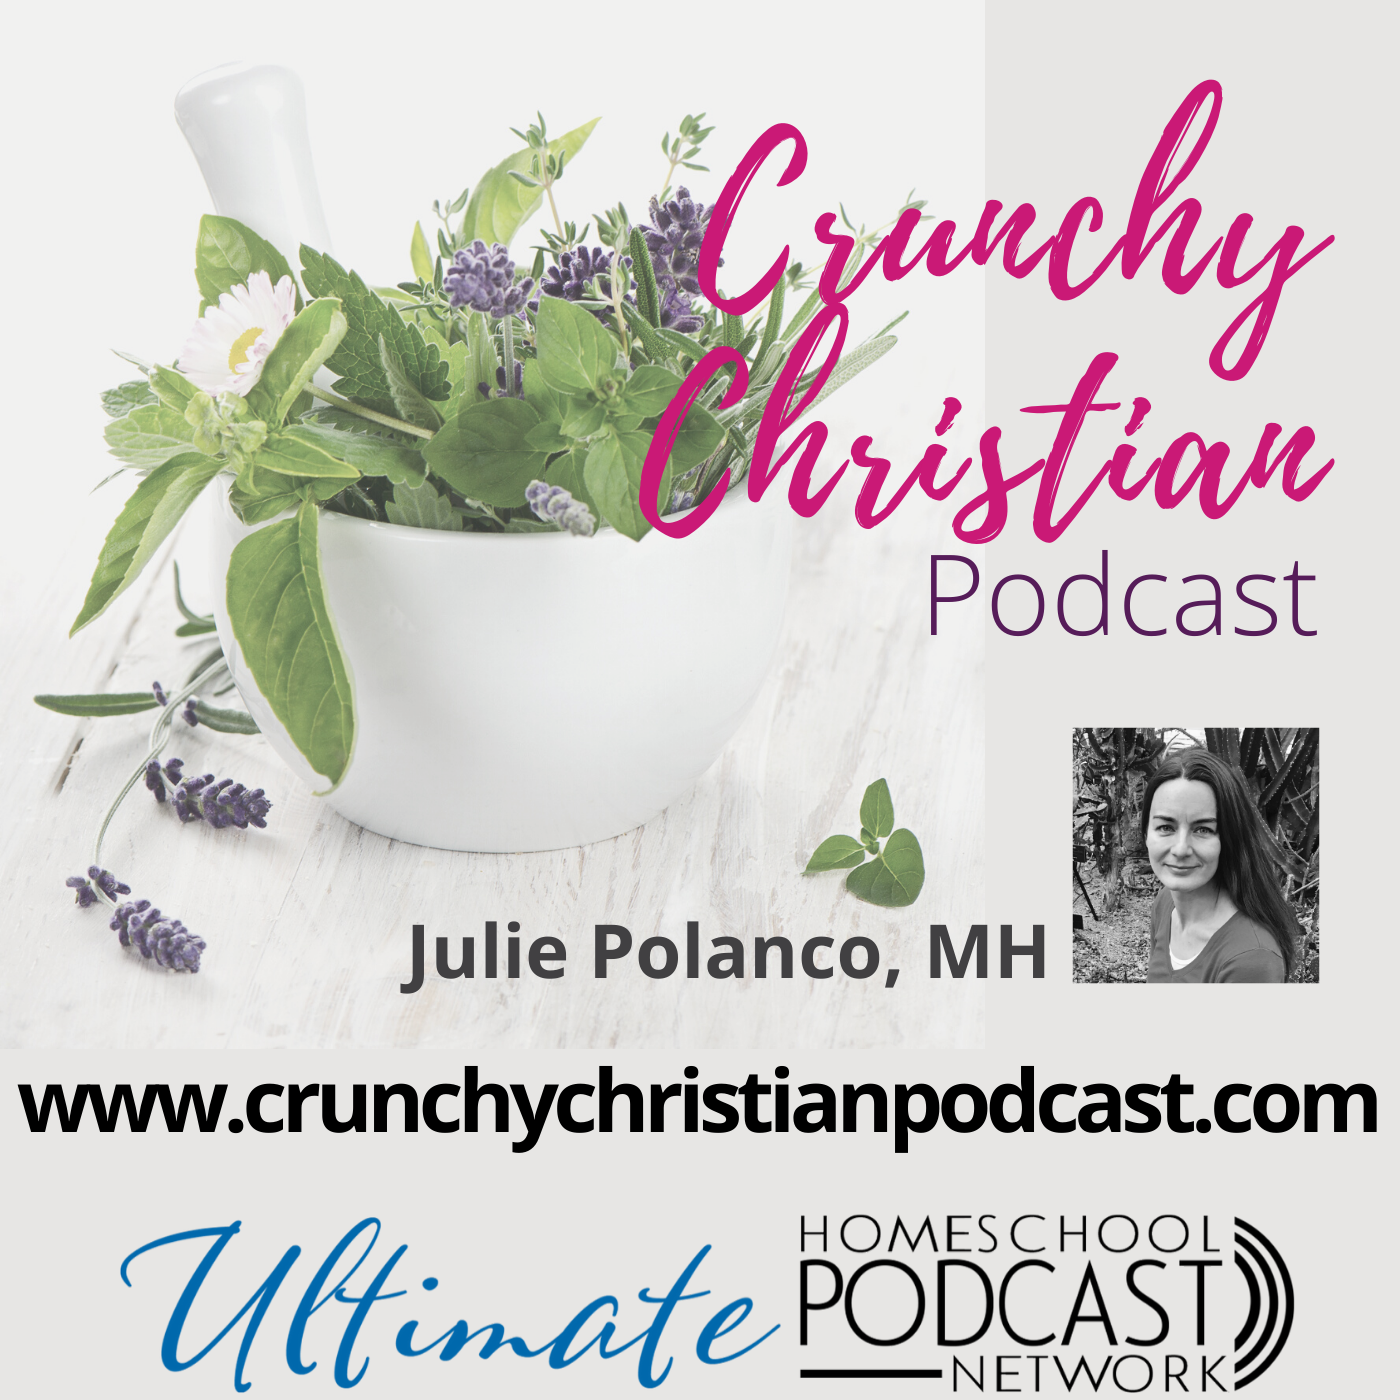 Crunchy Christian Podcast with Julie Polanco, MH